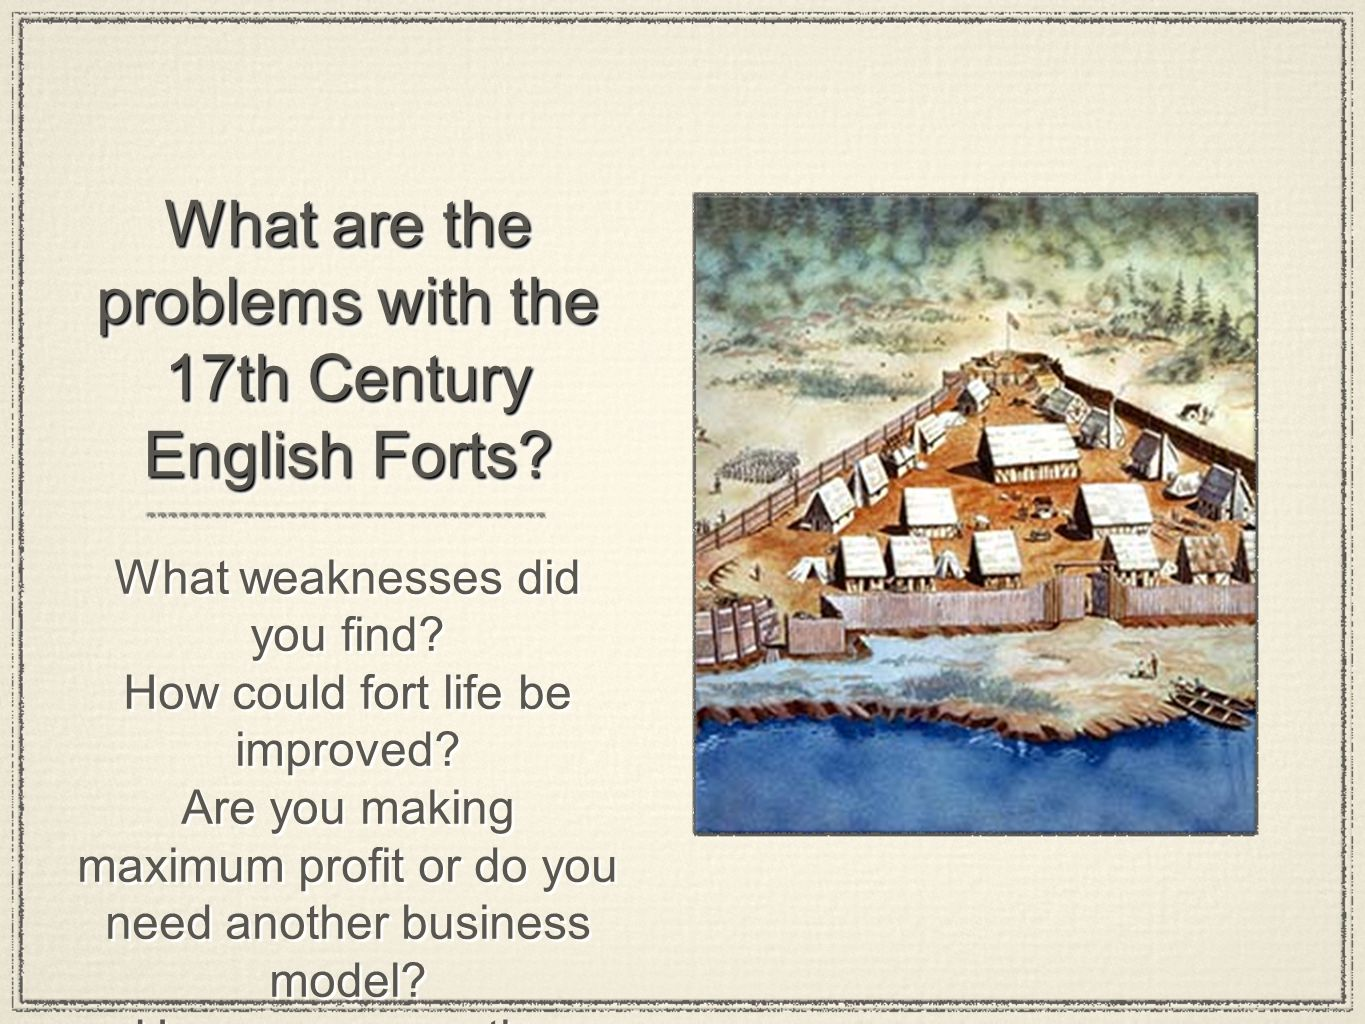 What are the problems with the 17th Century English Forts